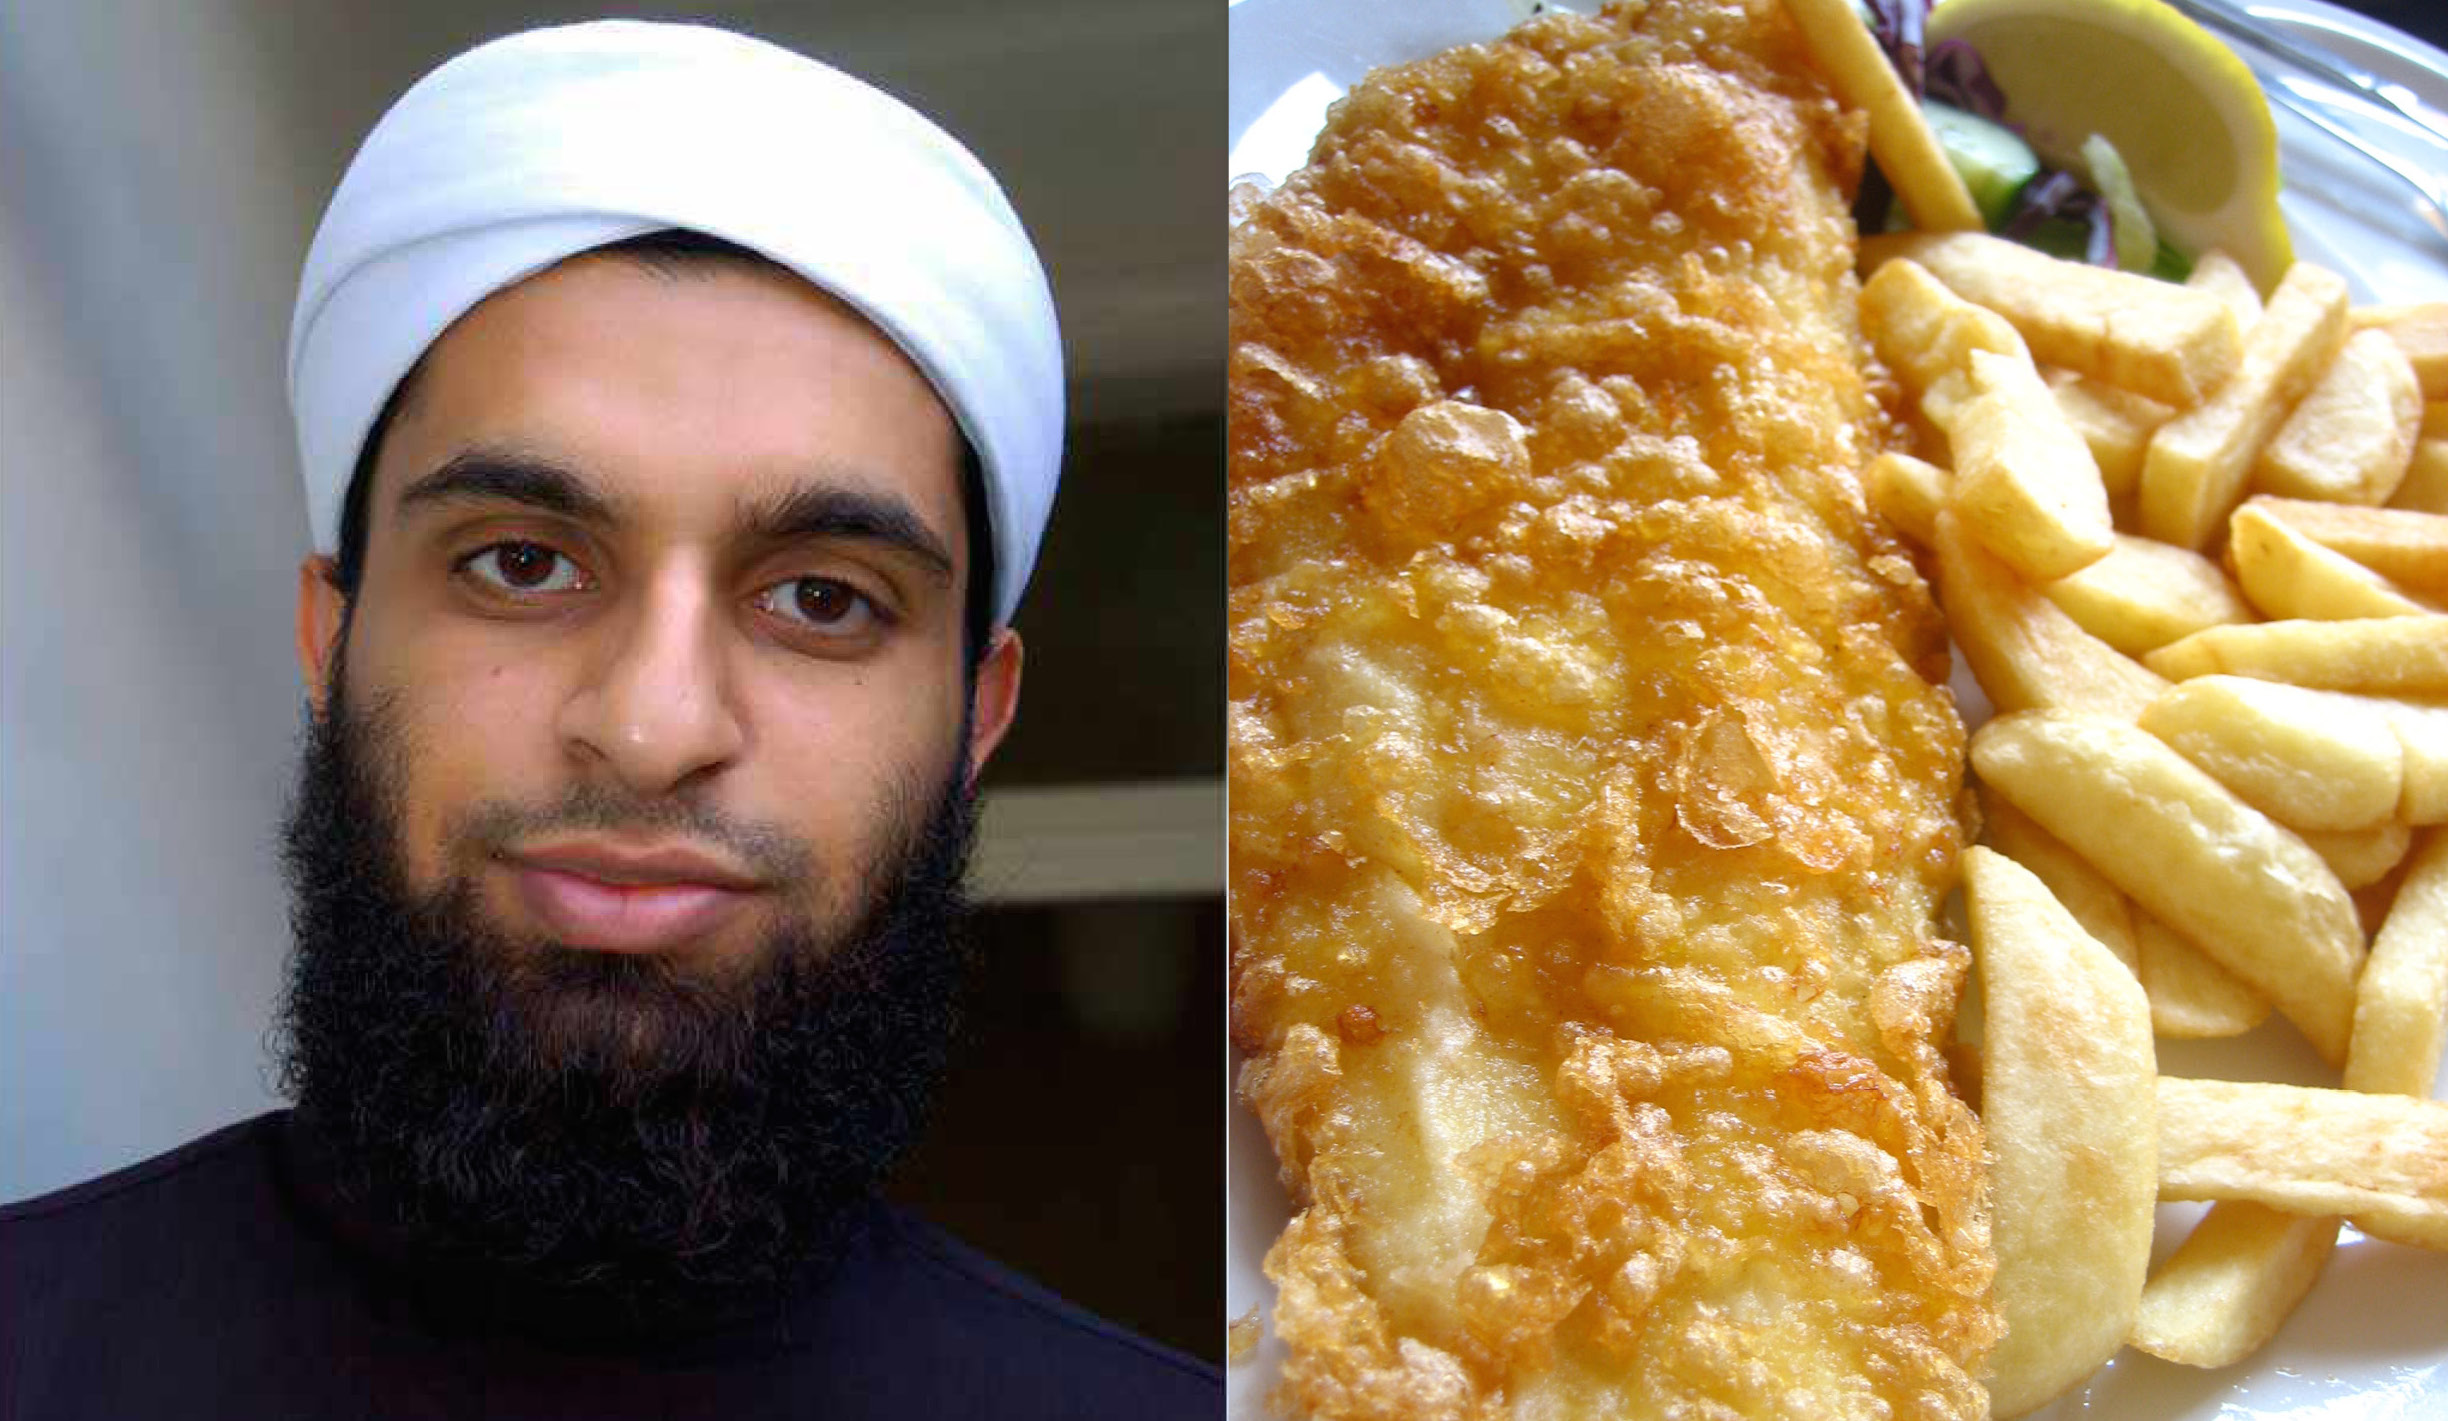 sajid-aslam-fish-and-chips